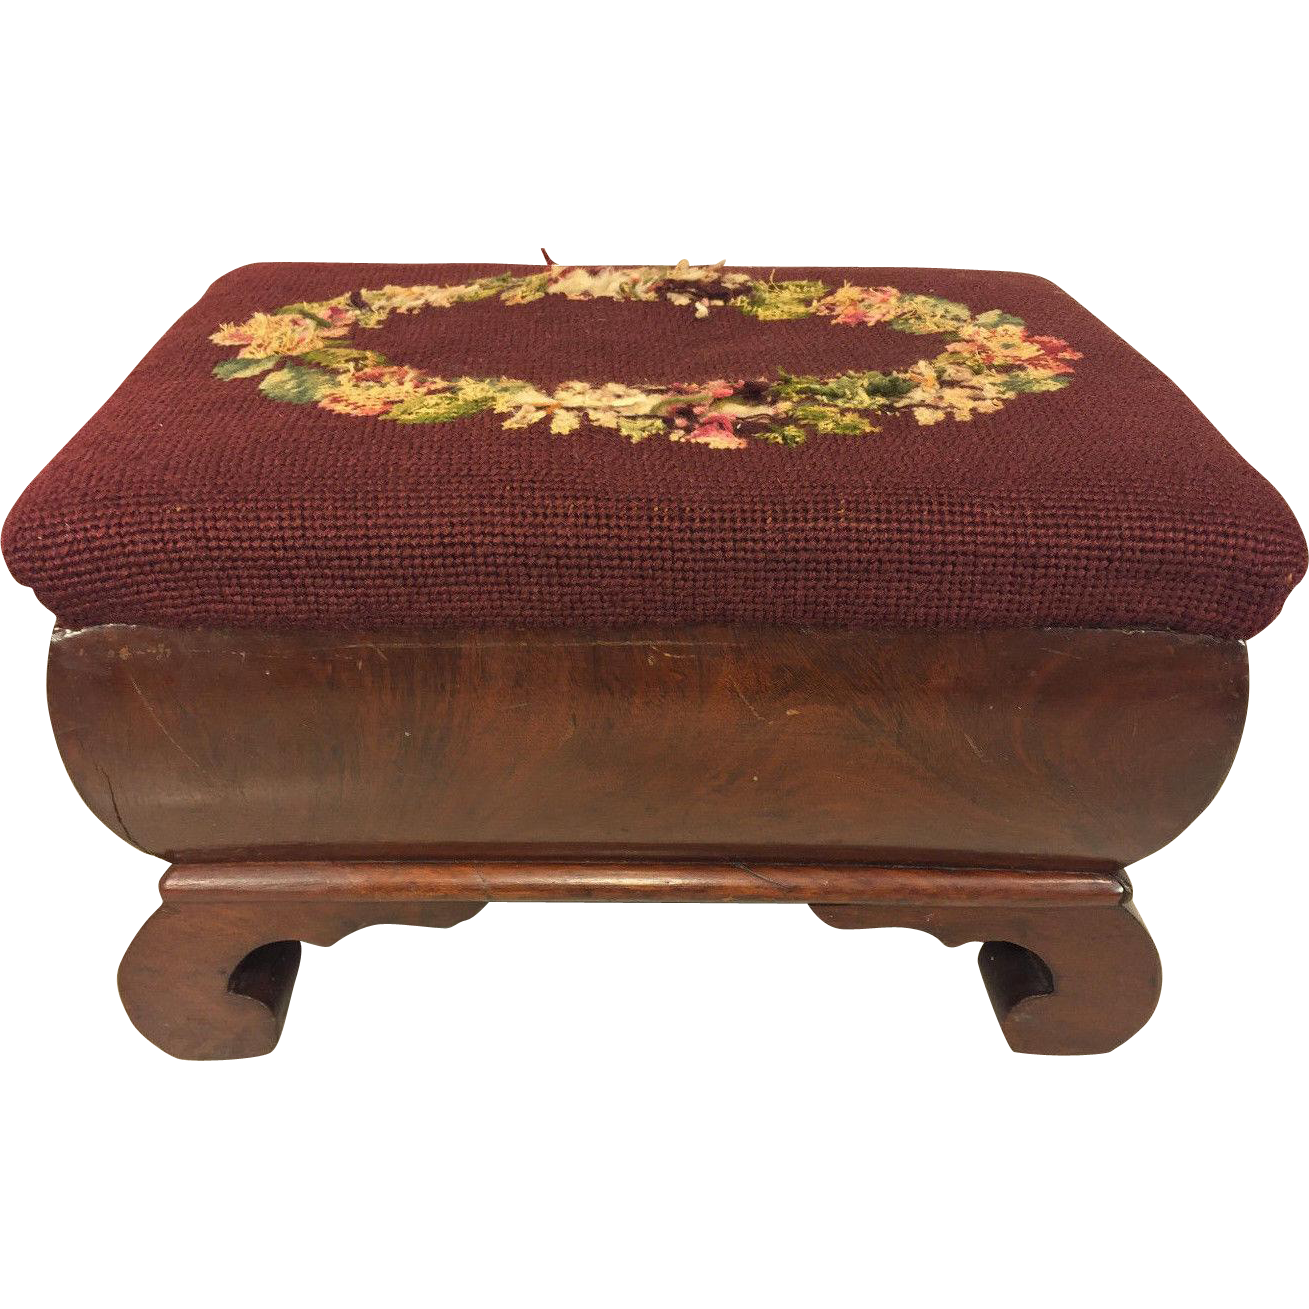 antique empire style flame mahogany stool with embroidery. Black Bedroom Furniture Sets. Home Design Ideas